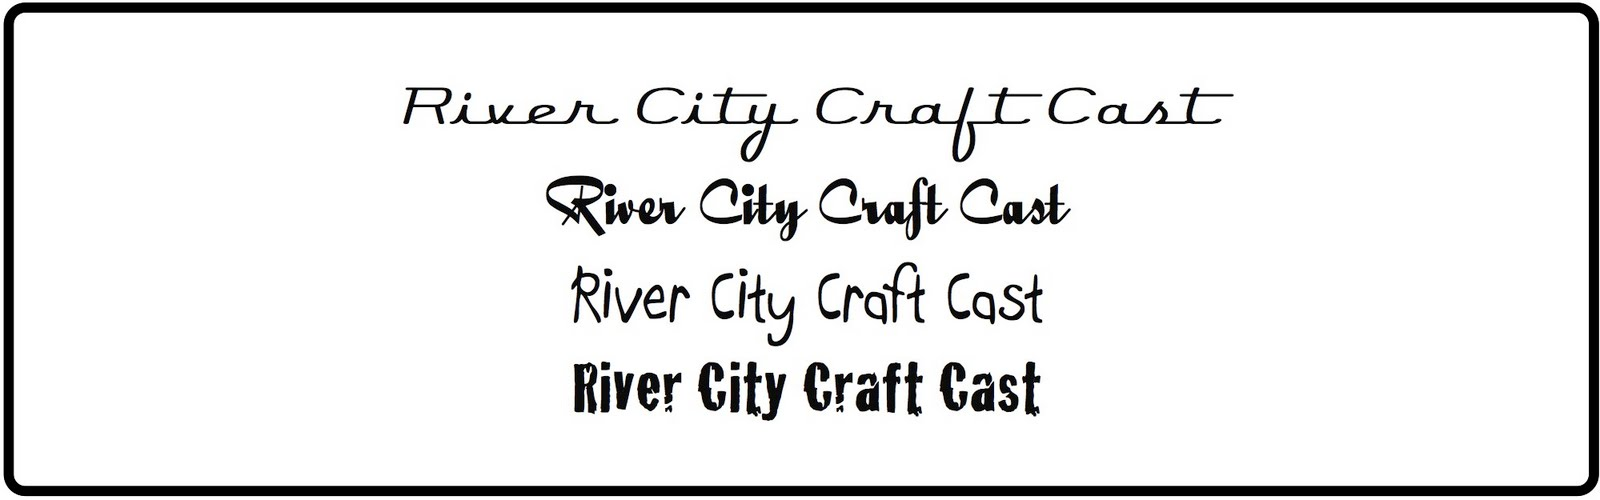 River City Craft Cast